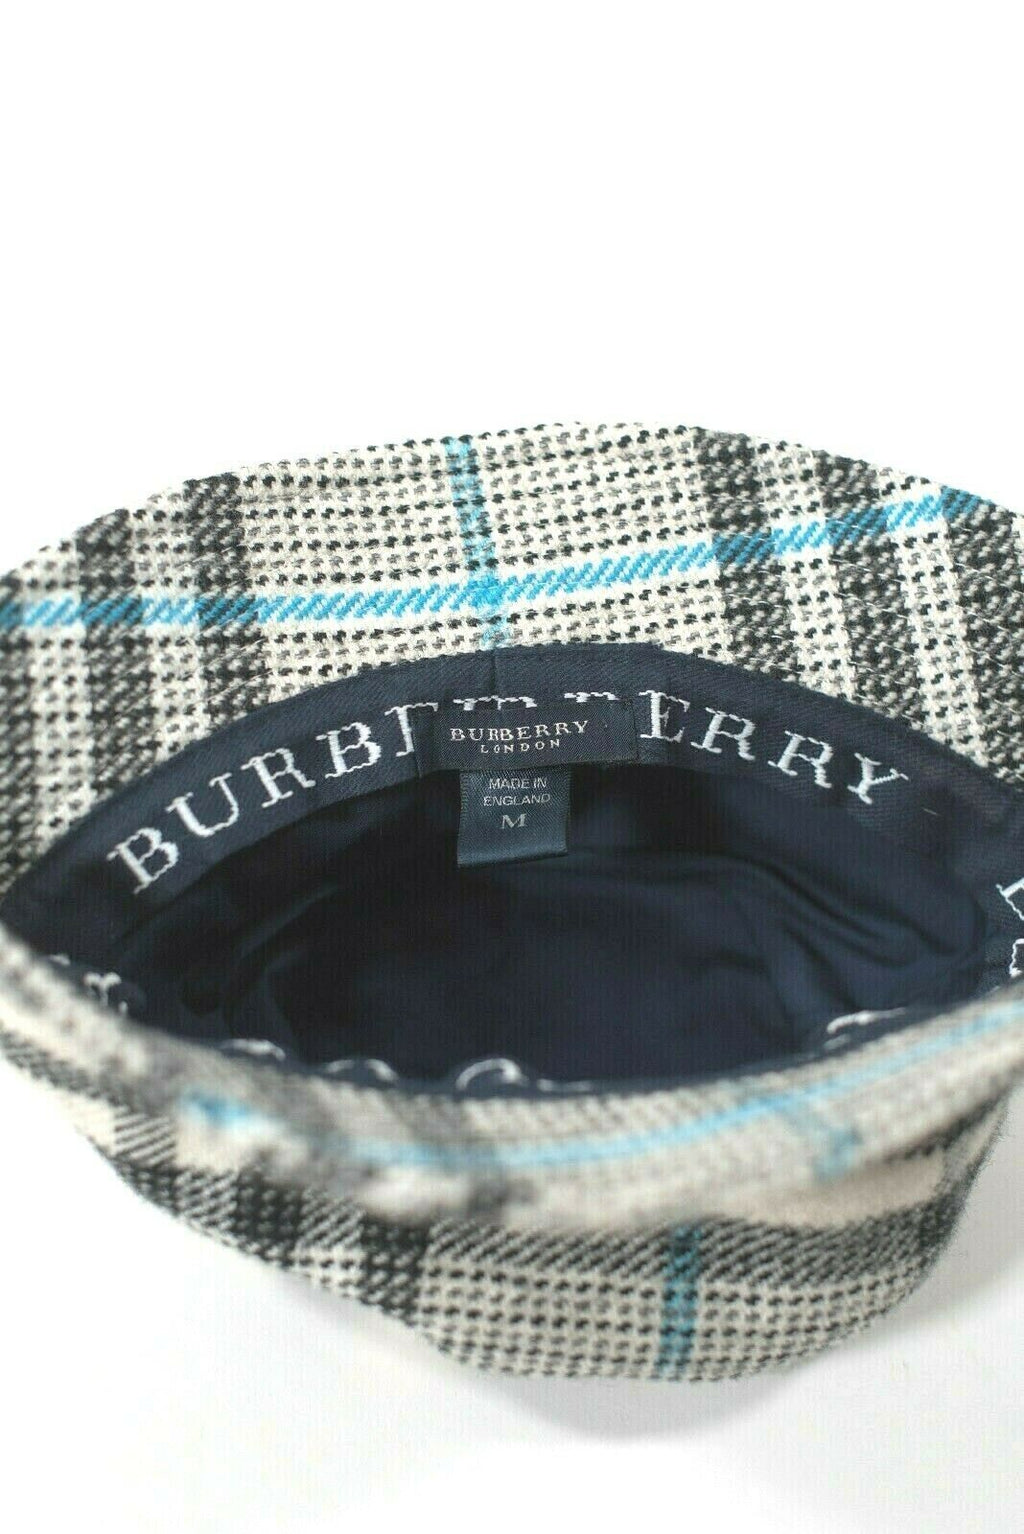 Burberry London Medium Ivory Blue Black Bucket Hat Nova Check Plaid Wool Cap